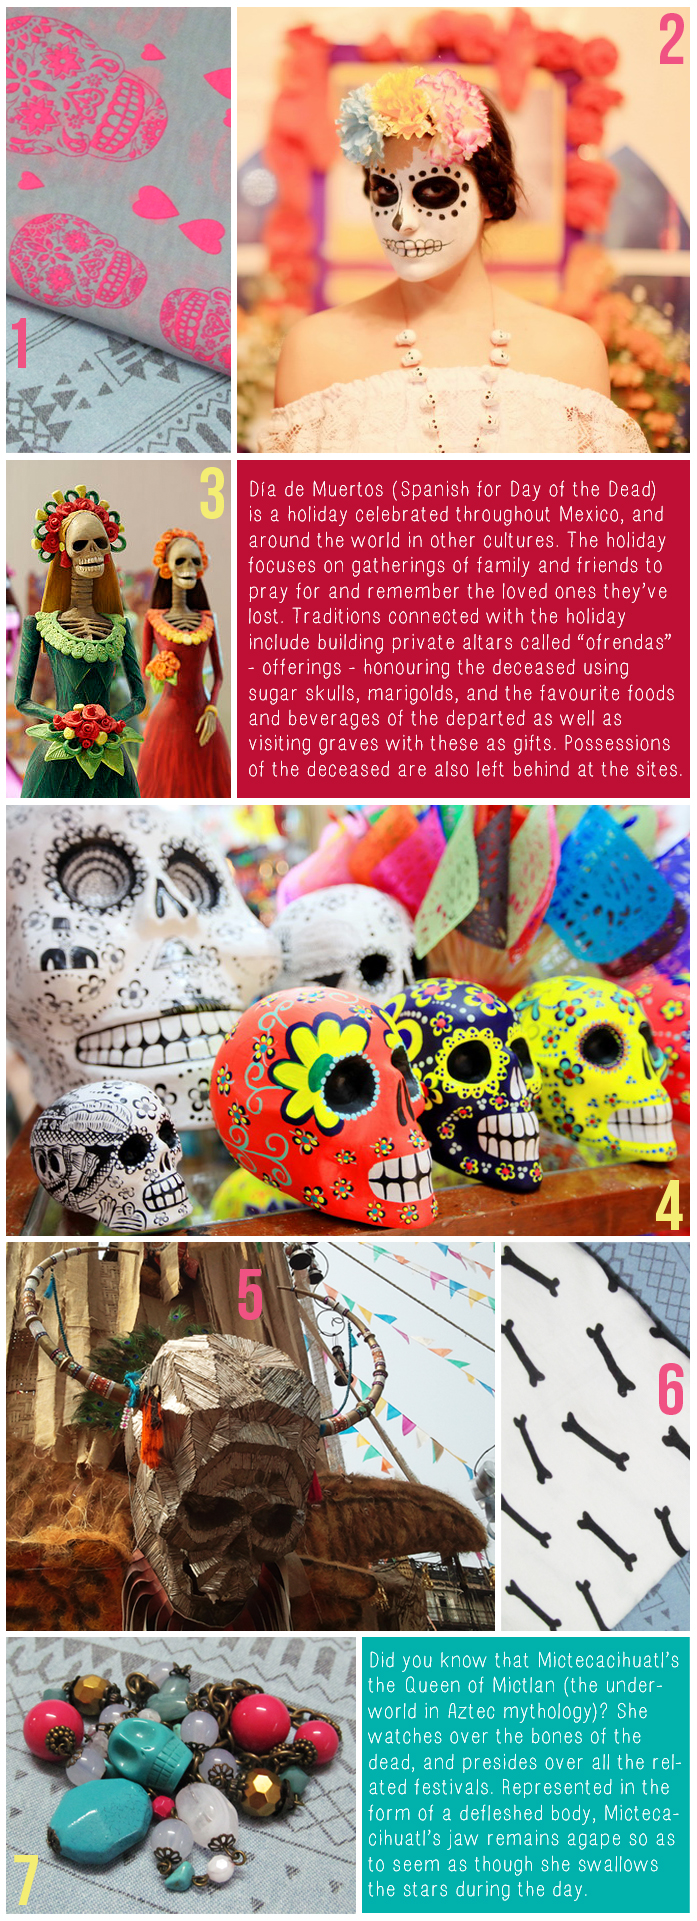 Skull Island, Day of the Dead, Welcome to Skull Island, Sugar Skulls, Mexico